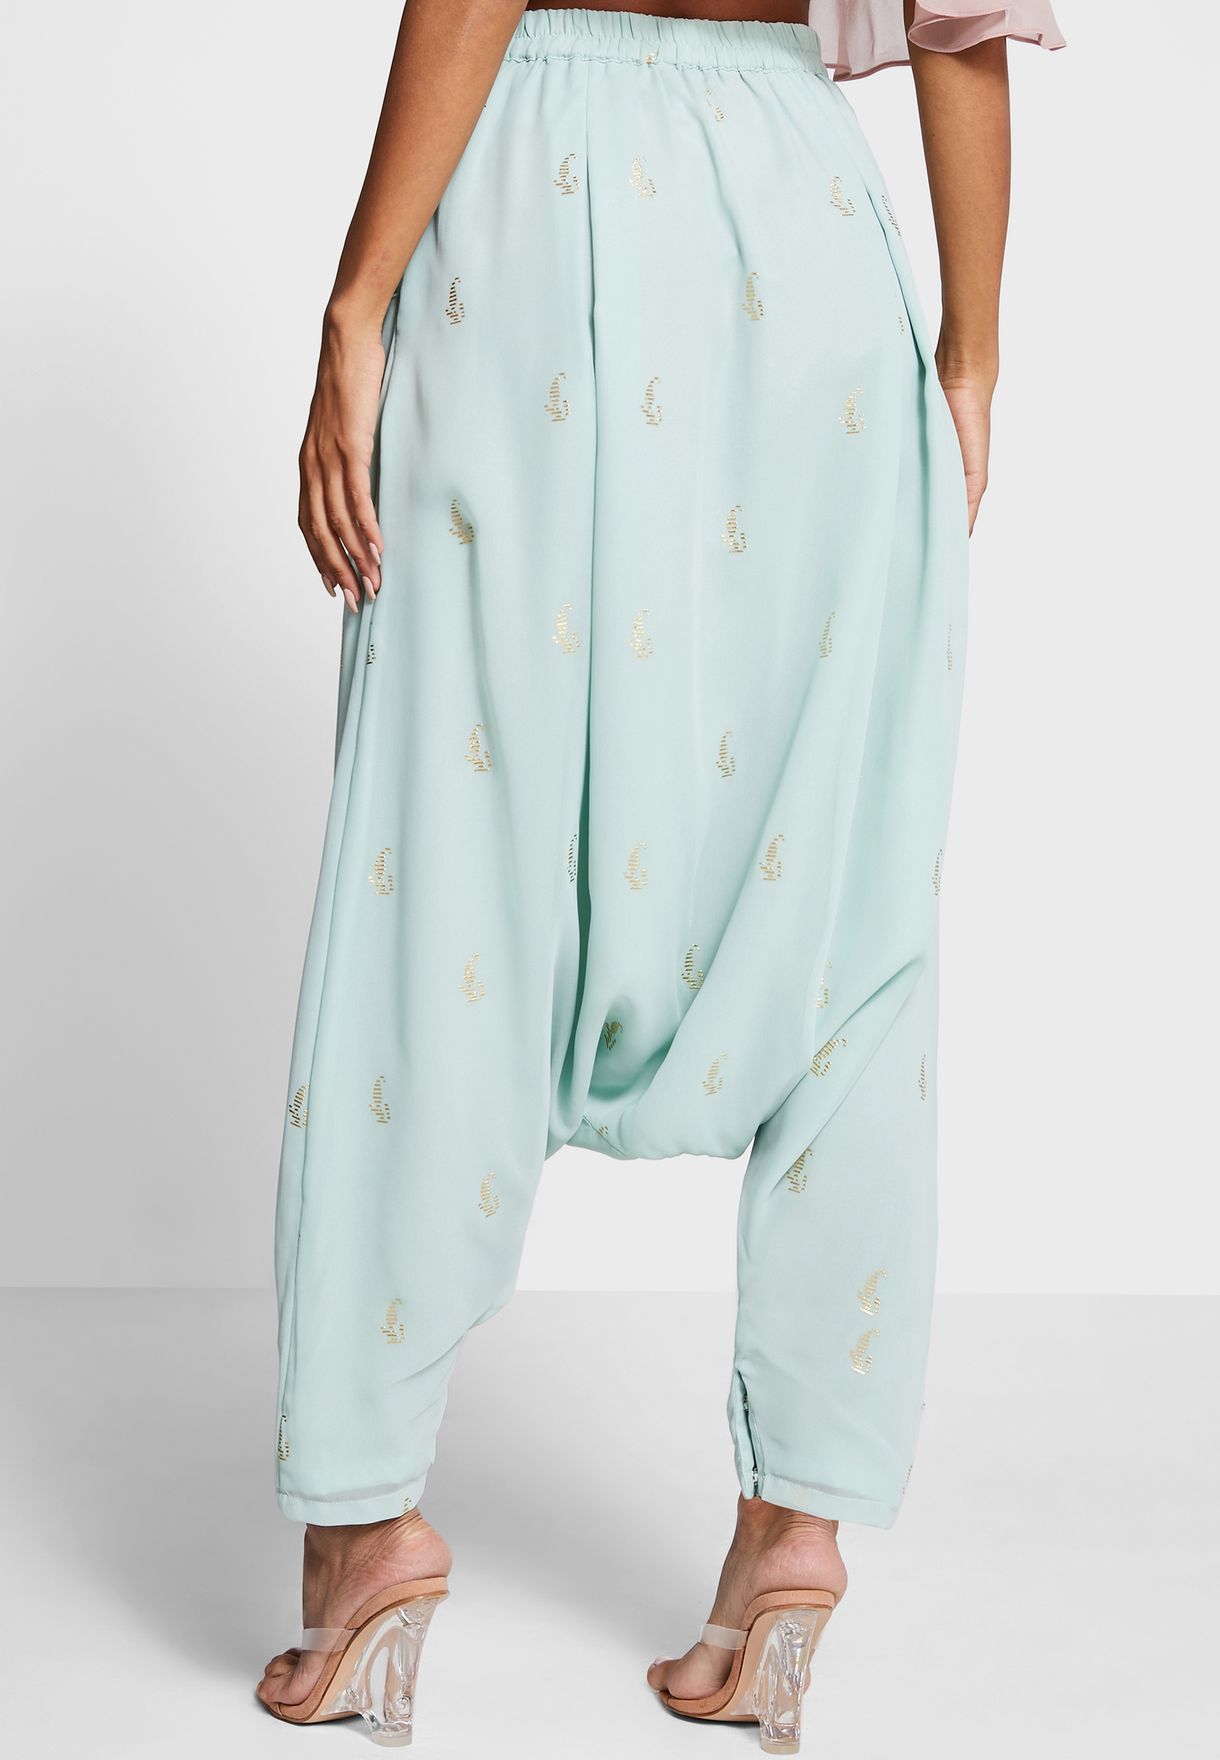 Indya X Payal Singhal Mint Mukaish Print Dhoti Pants